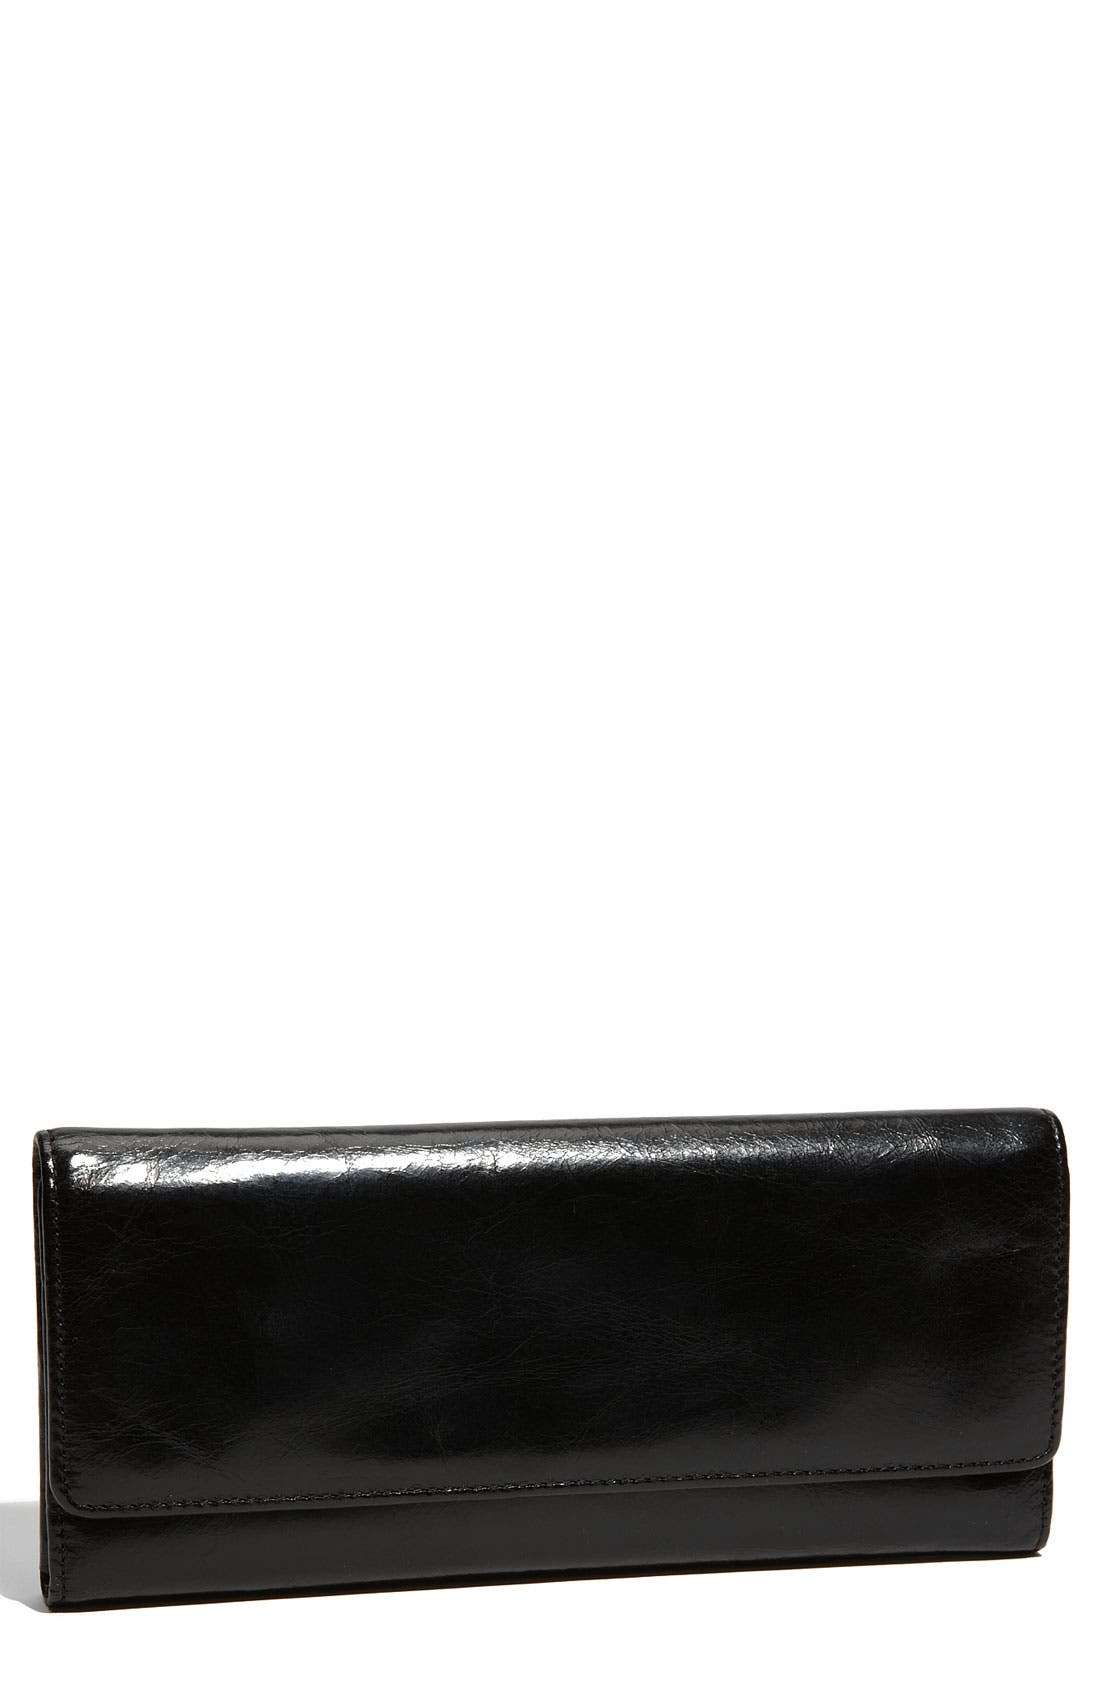 'Sadie' Leather Wallet,                             Main thumbnail 1, color,                             Black